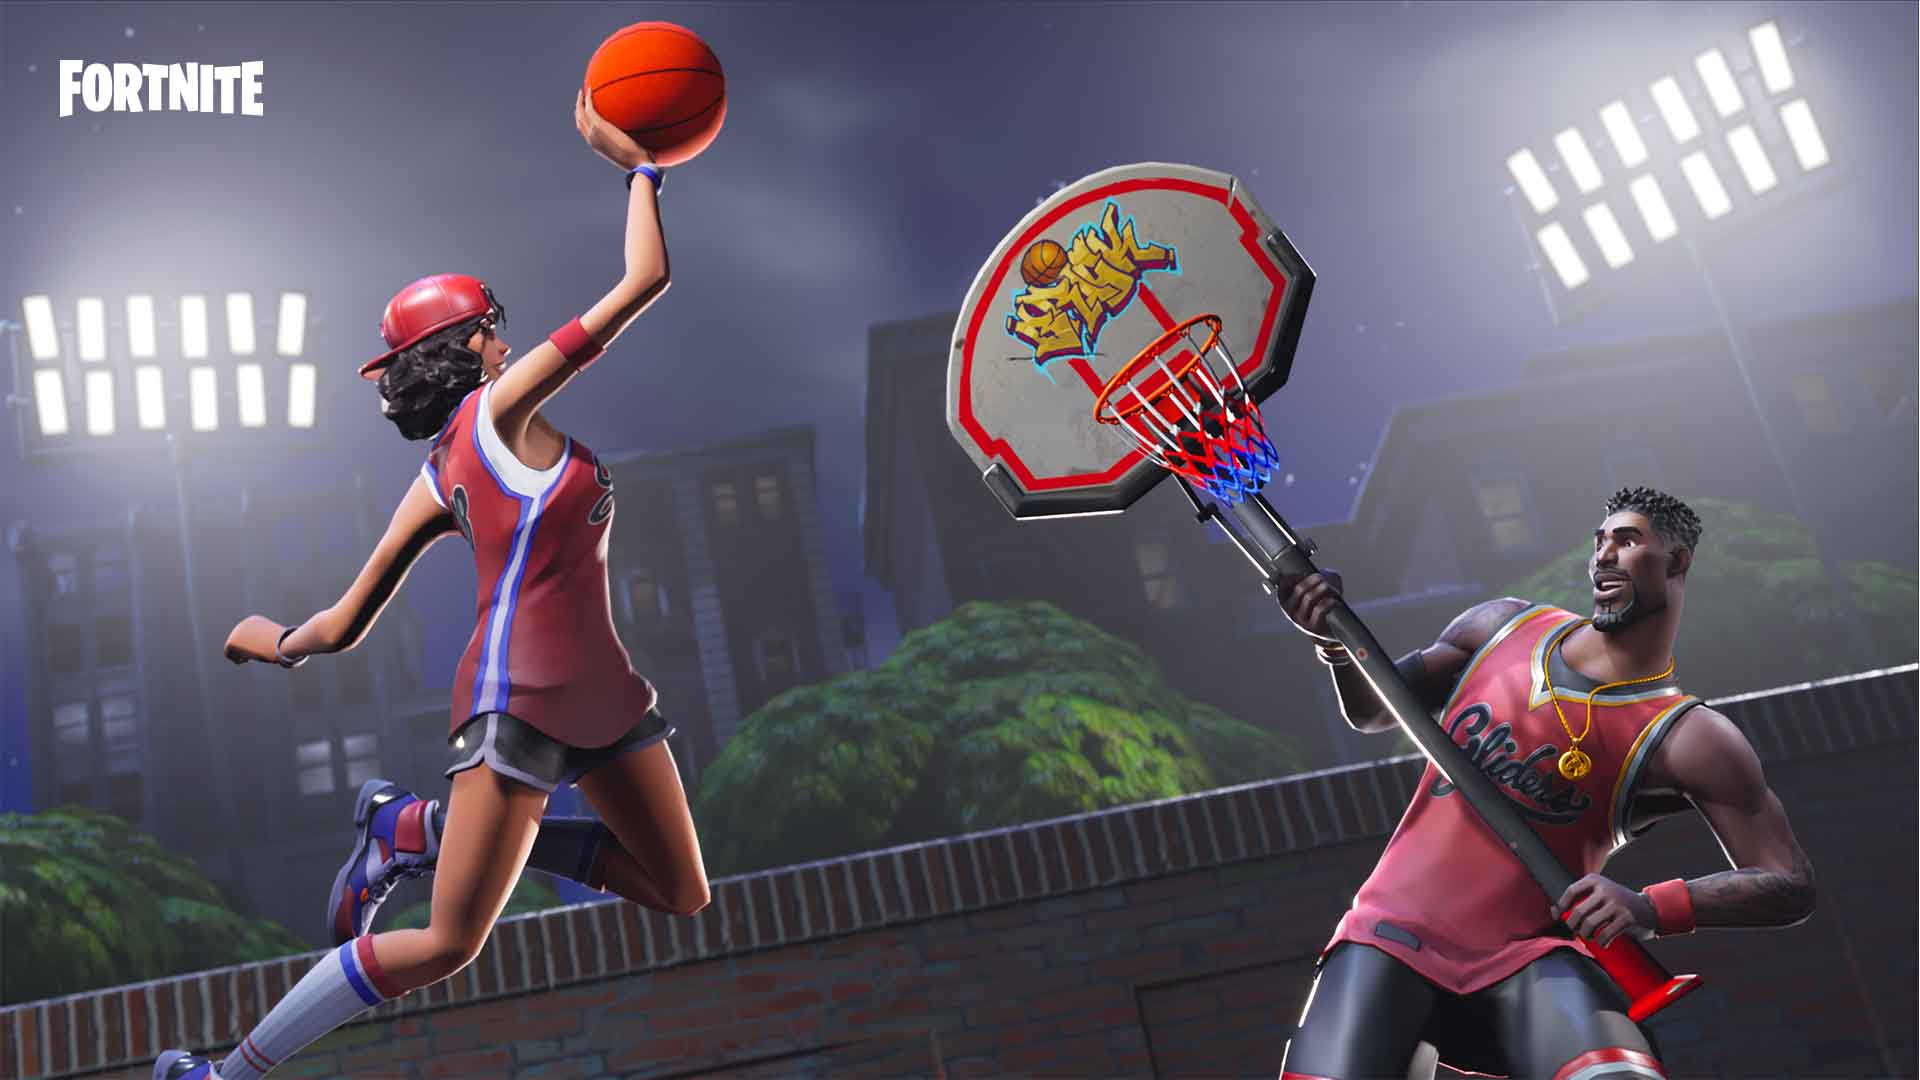 What did E3 tell us about the future of Fortnite 1920x1080